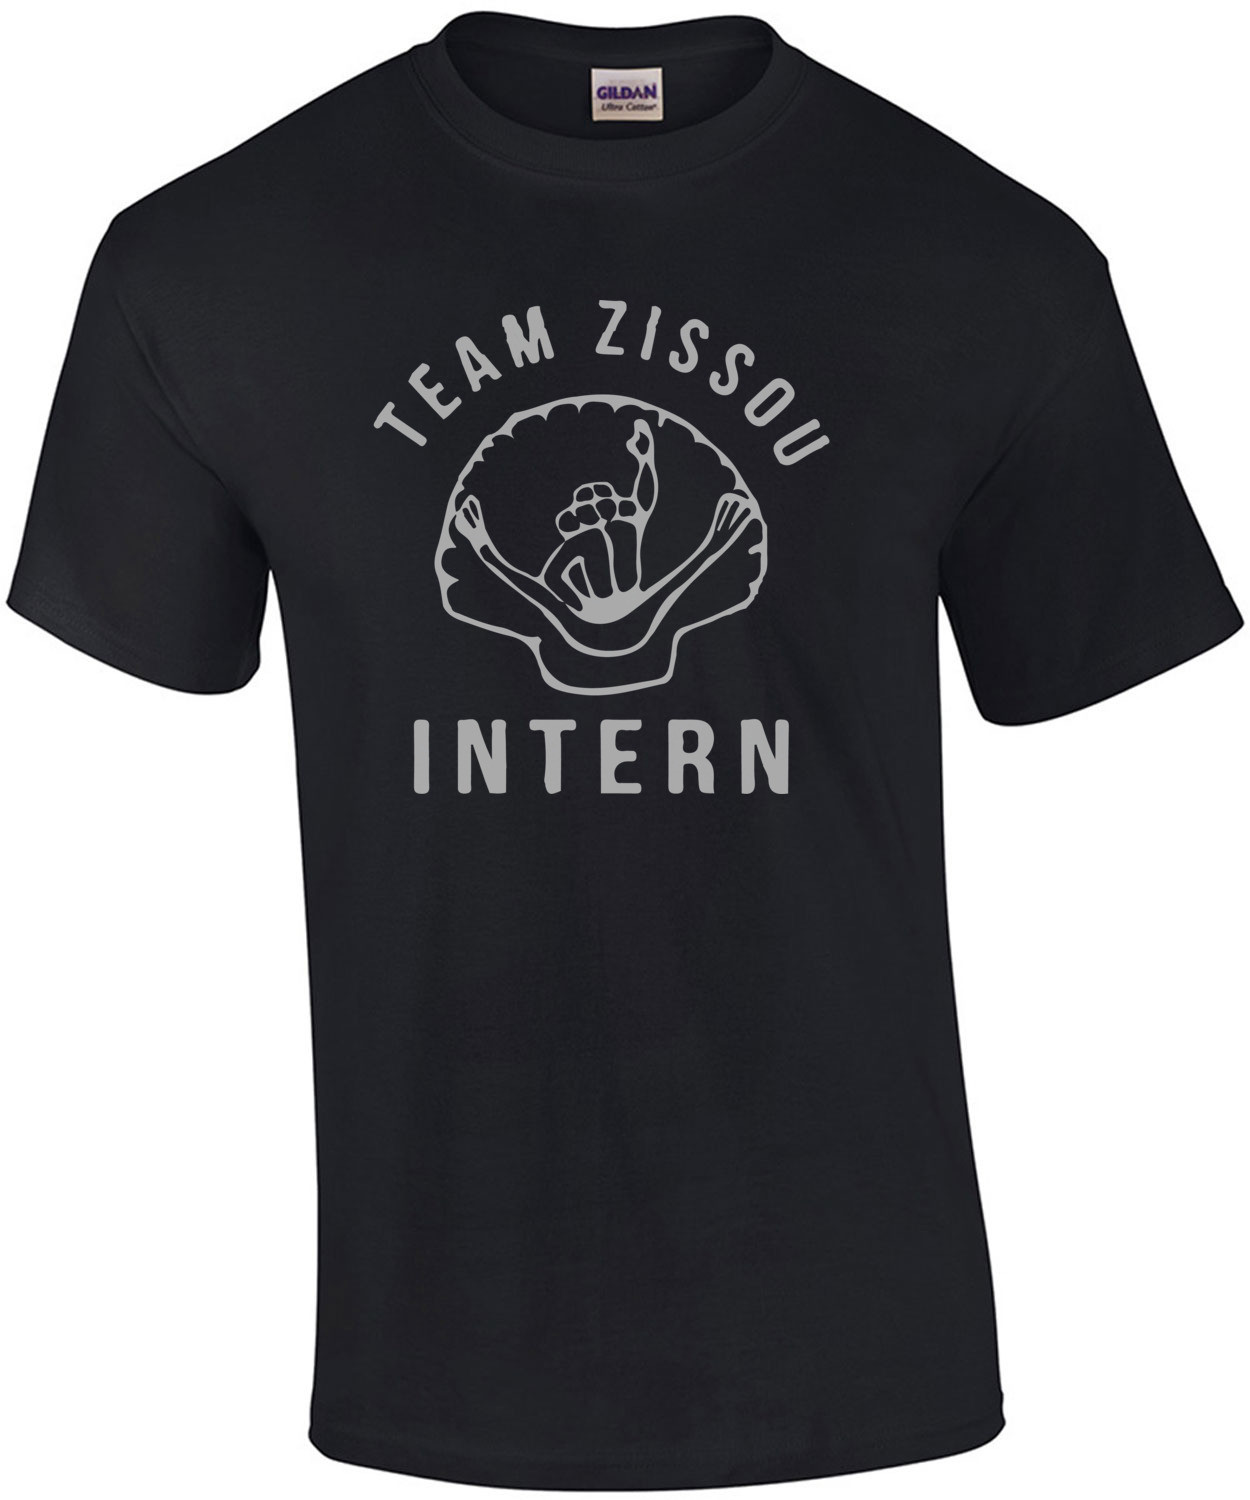 Team Zissou Intern - The Life Aquatic with Steve Zissou T-Shirt